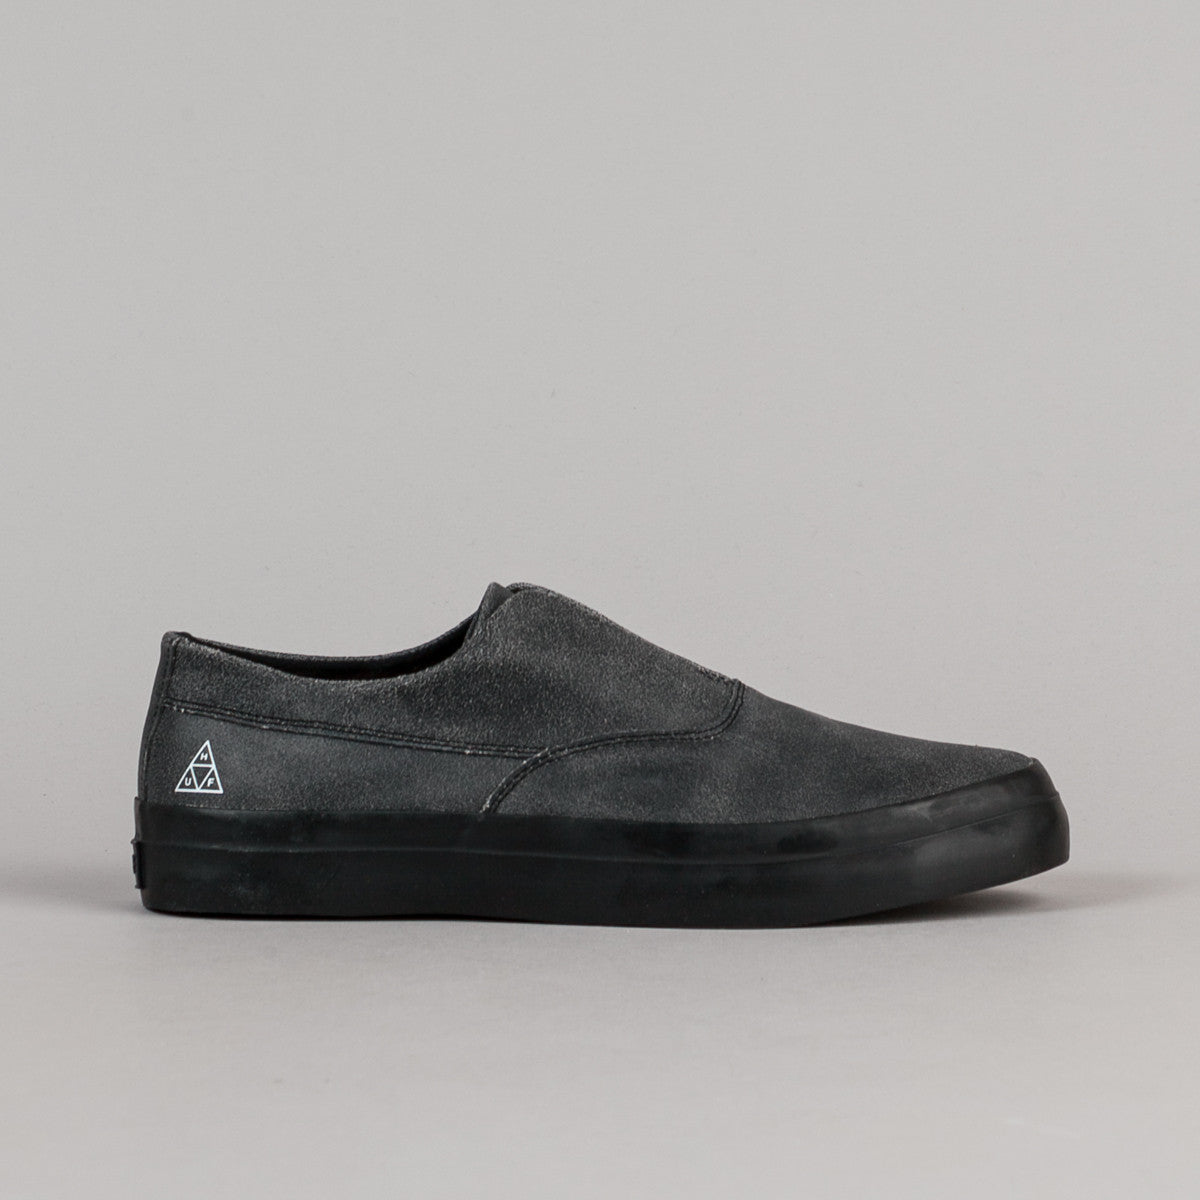 HUF Dylan Slip On Shoes - Black Cracked